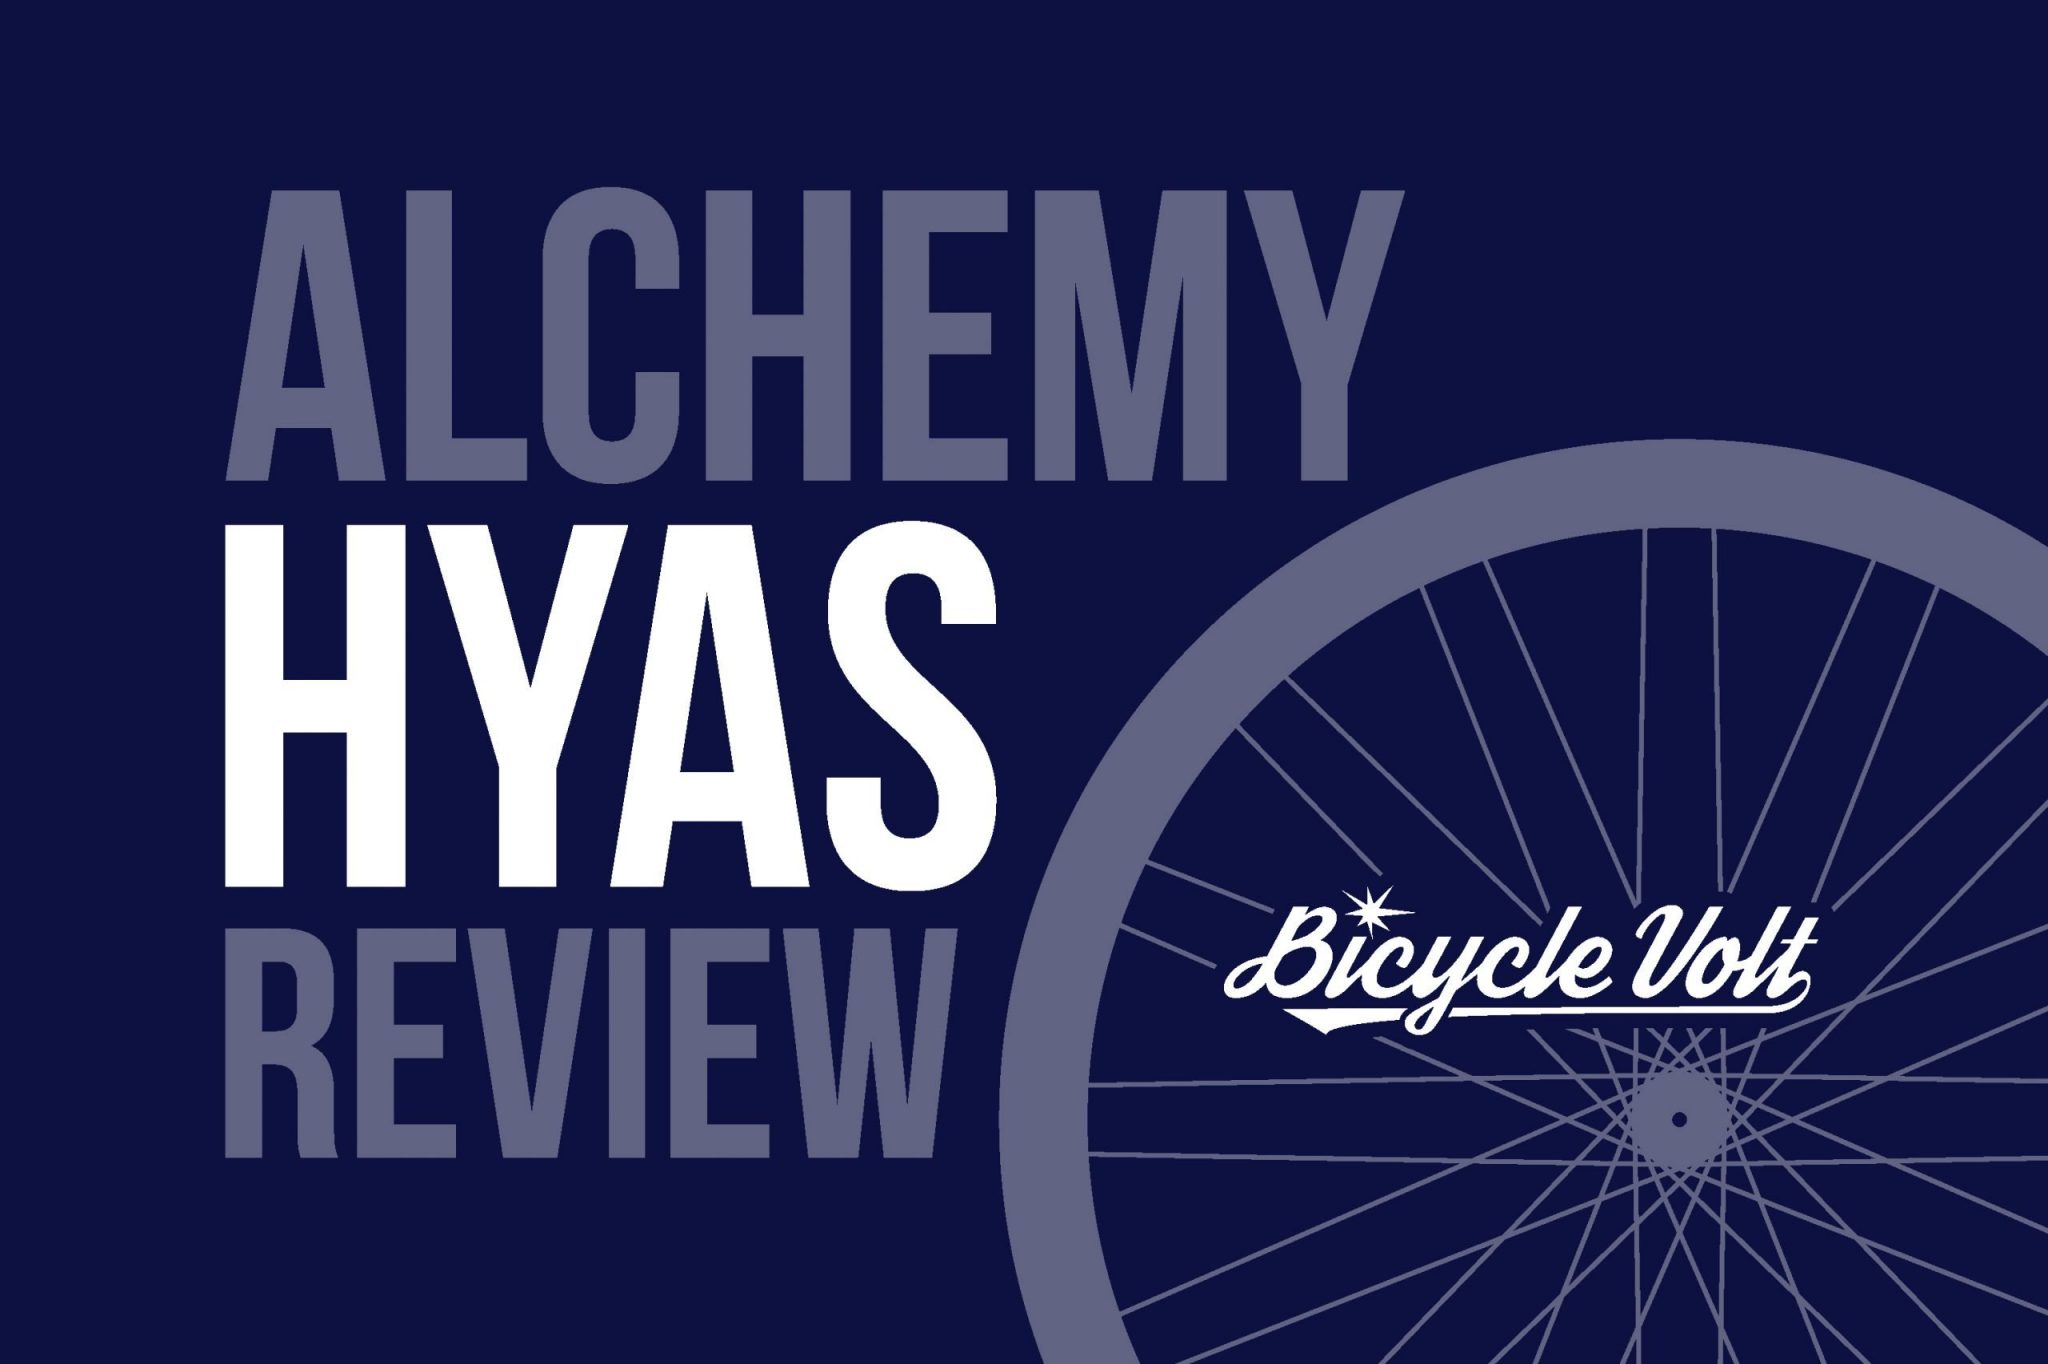 Alchemy Hyas Review